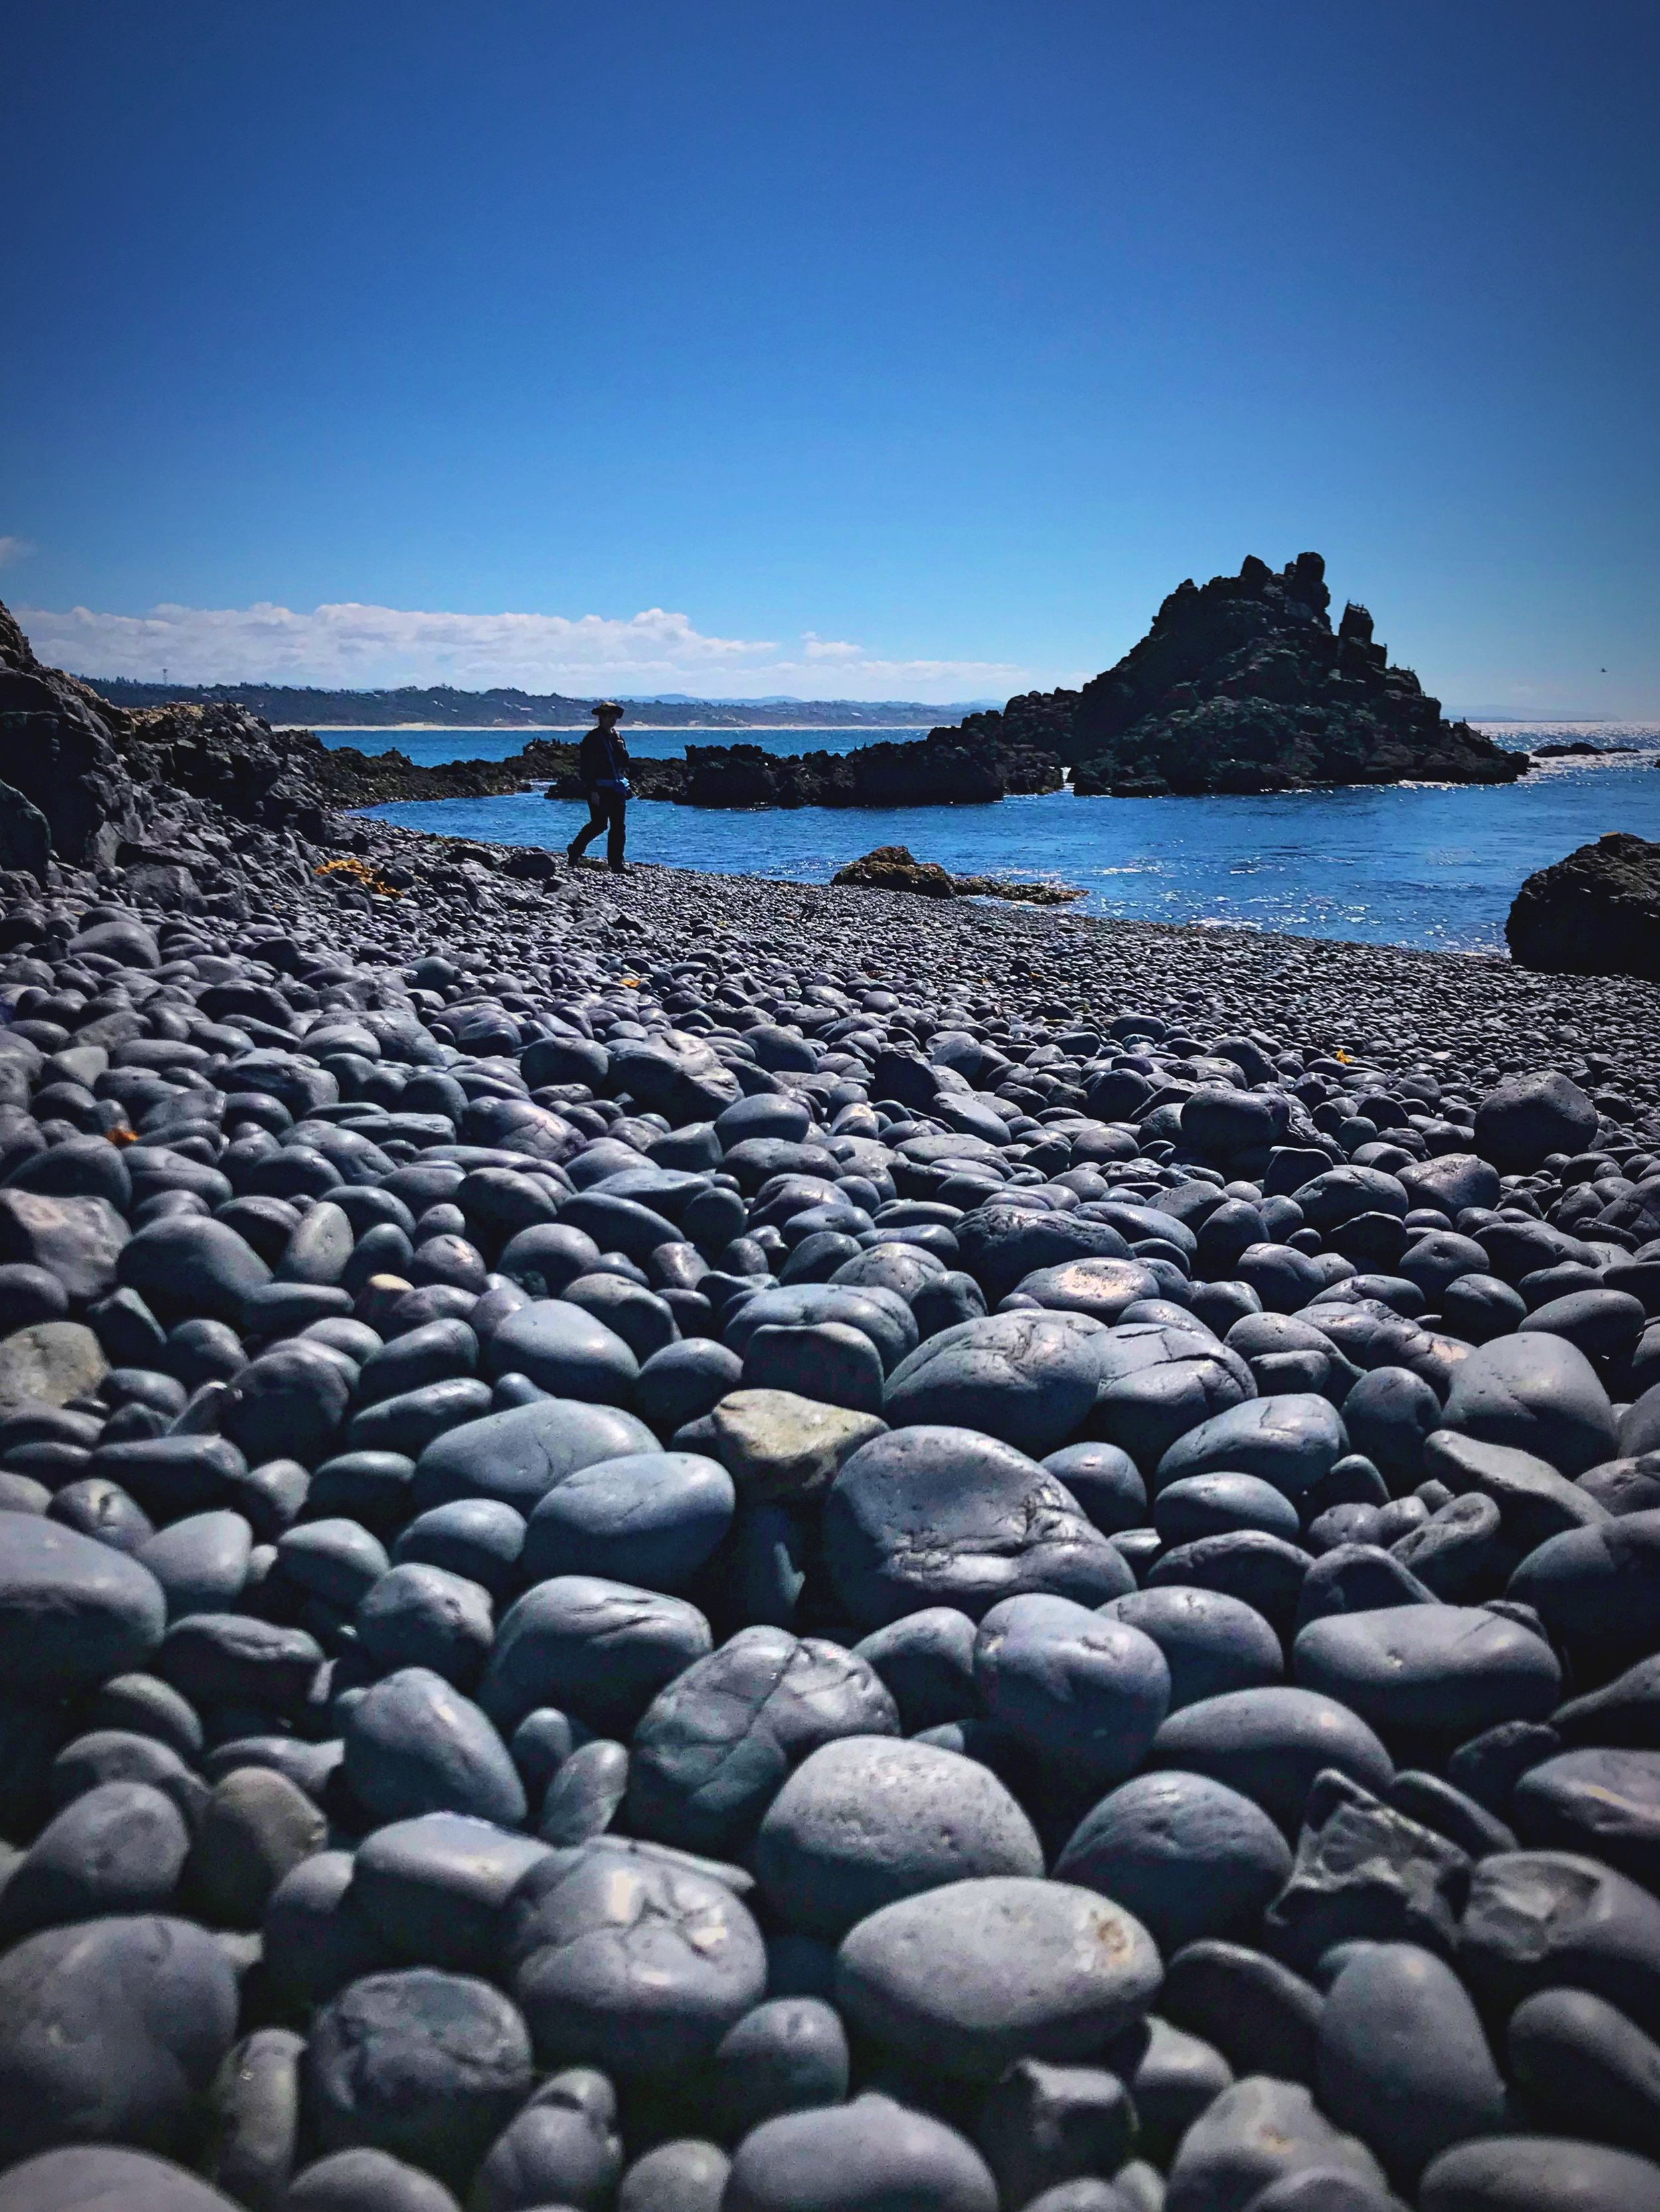 Walking on the cobble beach can be a little difficult.